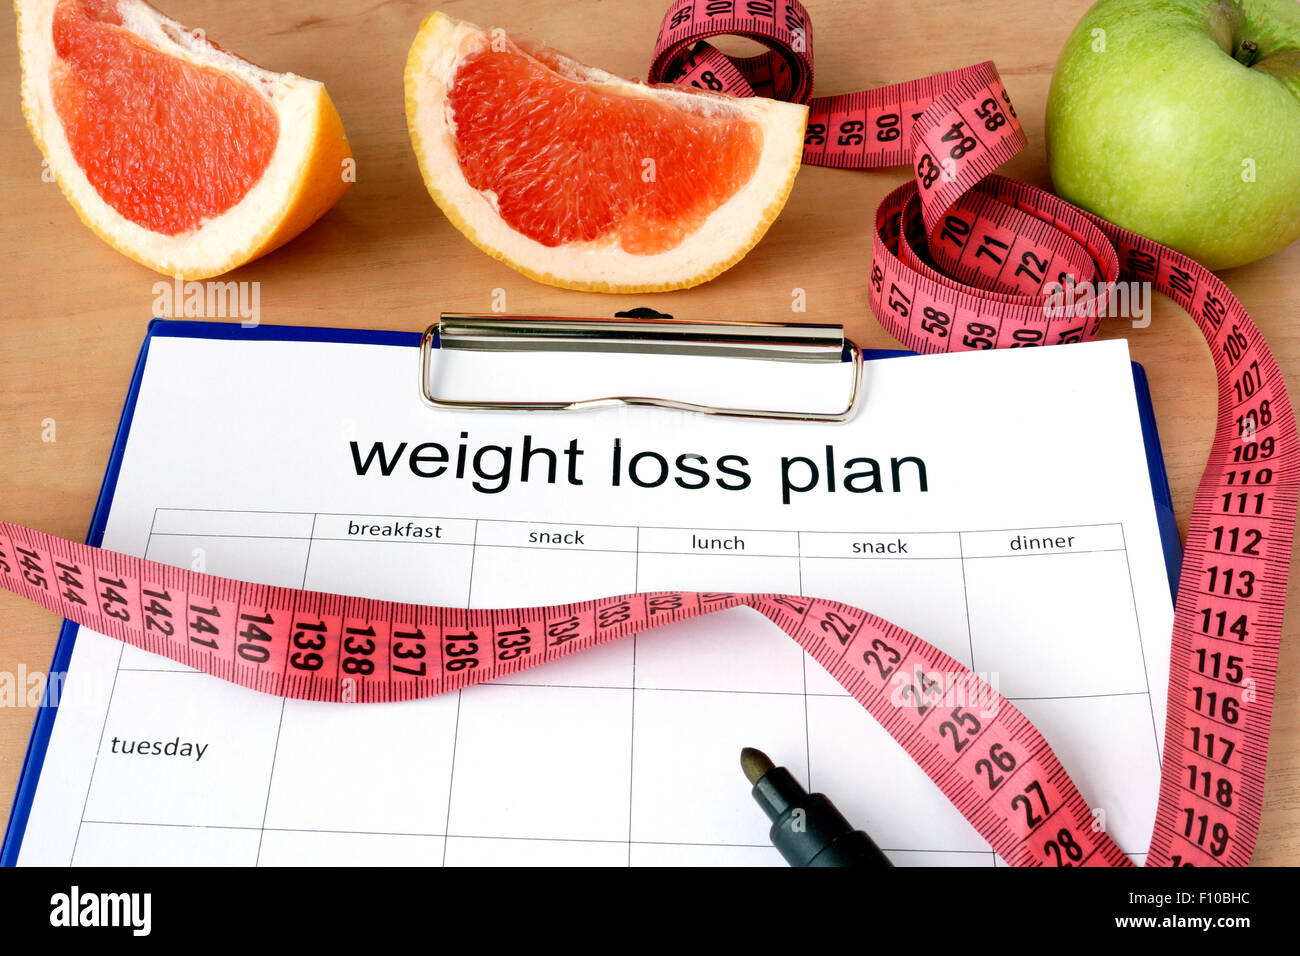 Paper with weight loss plan and grapefruit - Stock Image